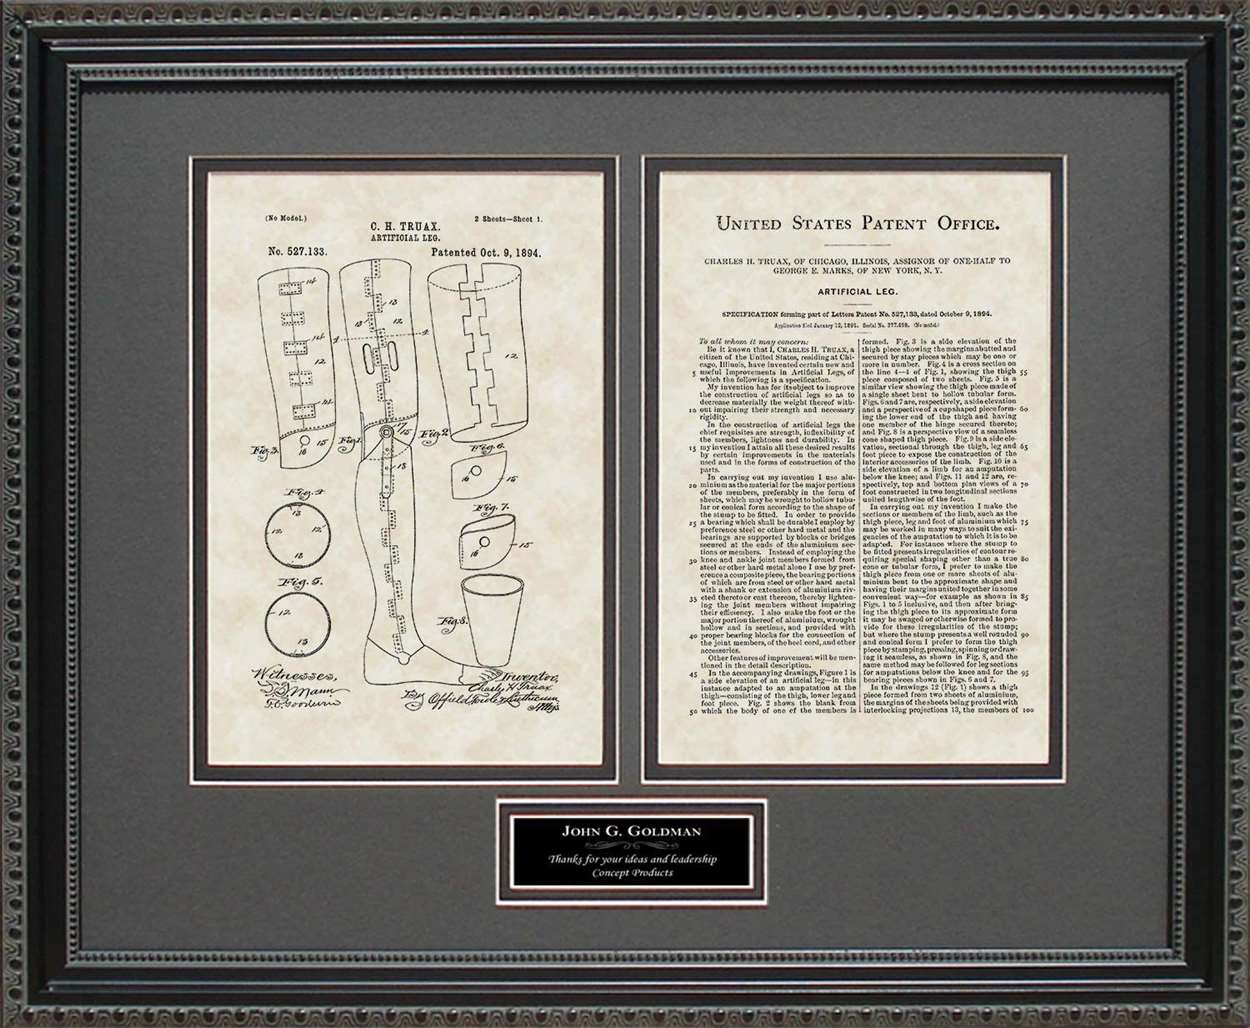 Personalized Artifical Leg Patent, Art & Copy, Truax, 1894